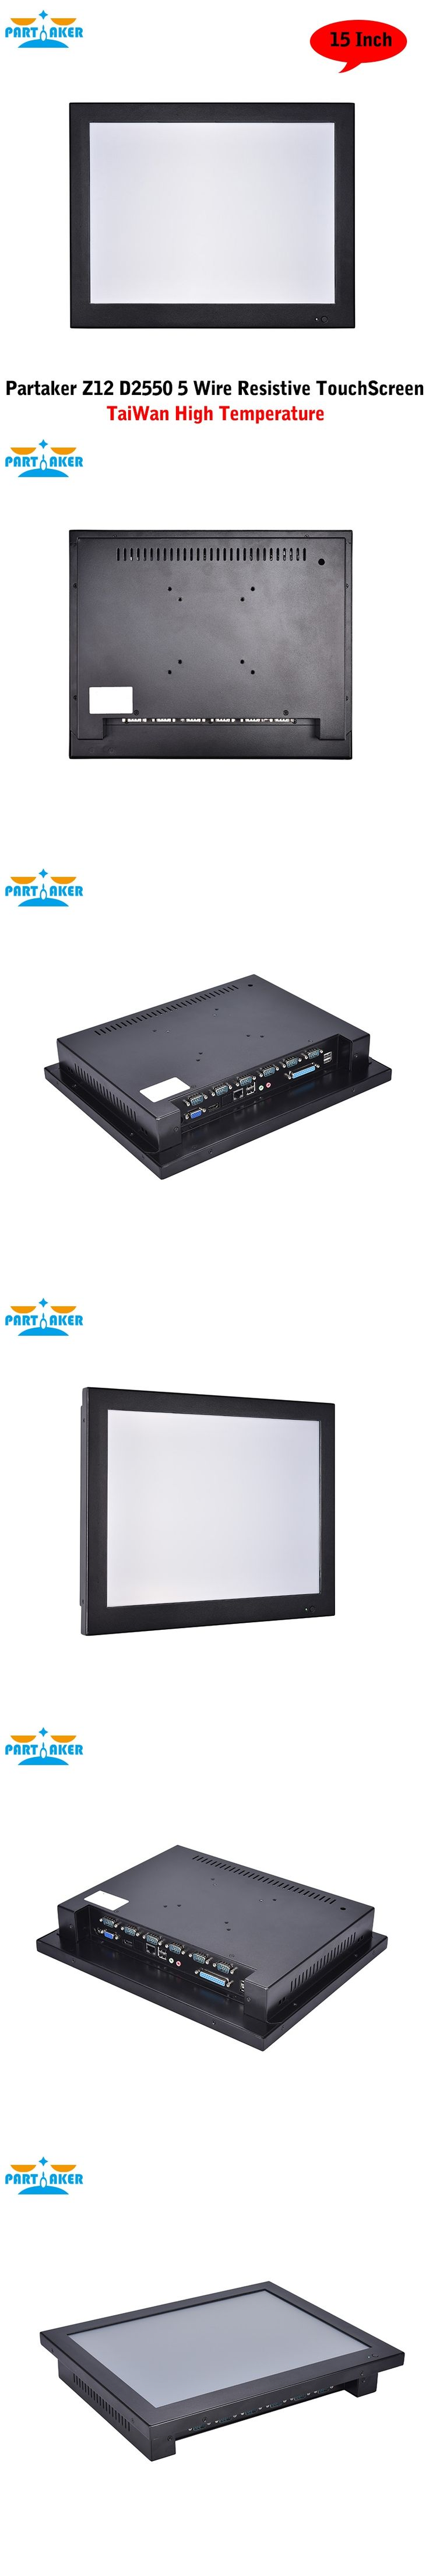 Partaker  Z12 15 Inch  Touch Screen Computer 6 COM Taiwan High Temperature 5 Wire With CPU D2550